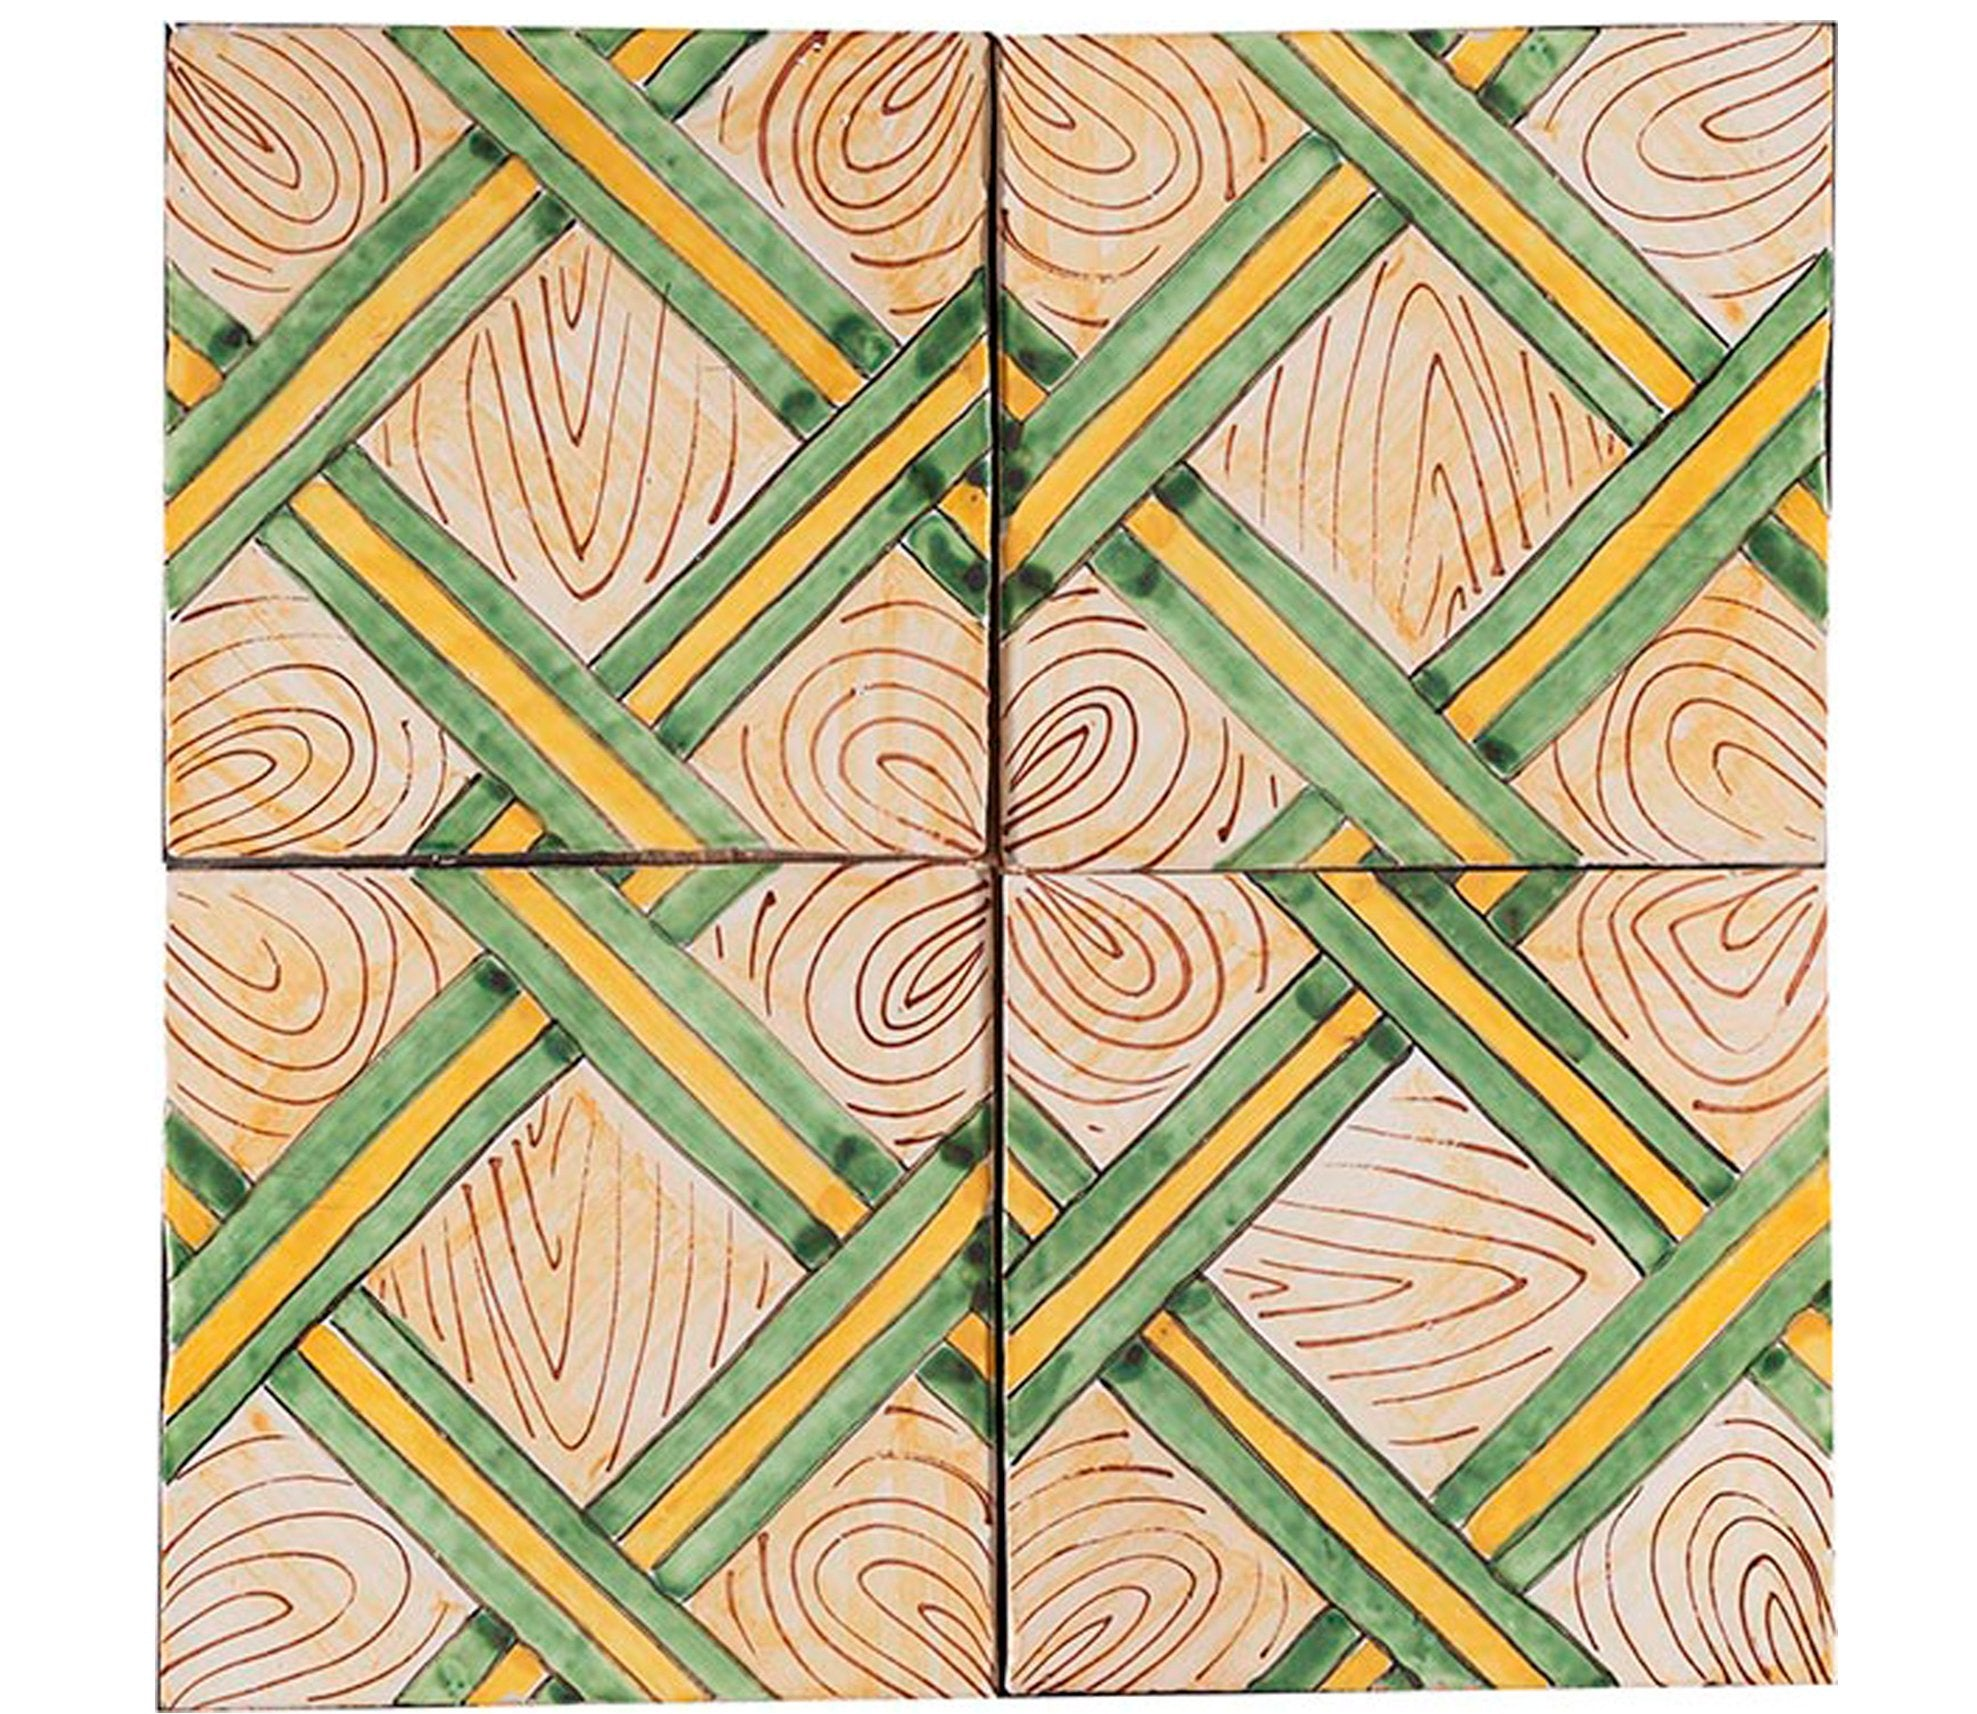 Series S Handpainted Tiles Product Image 6